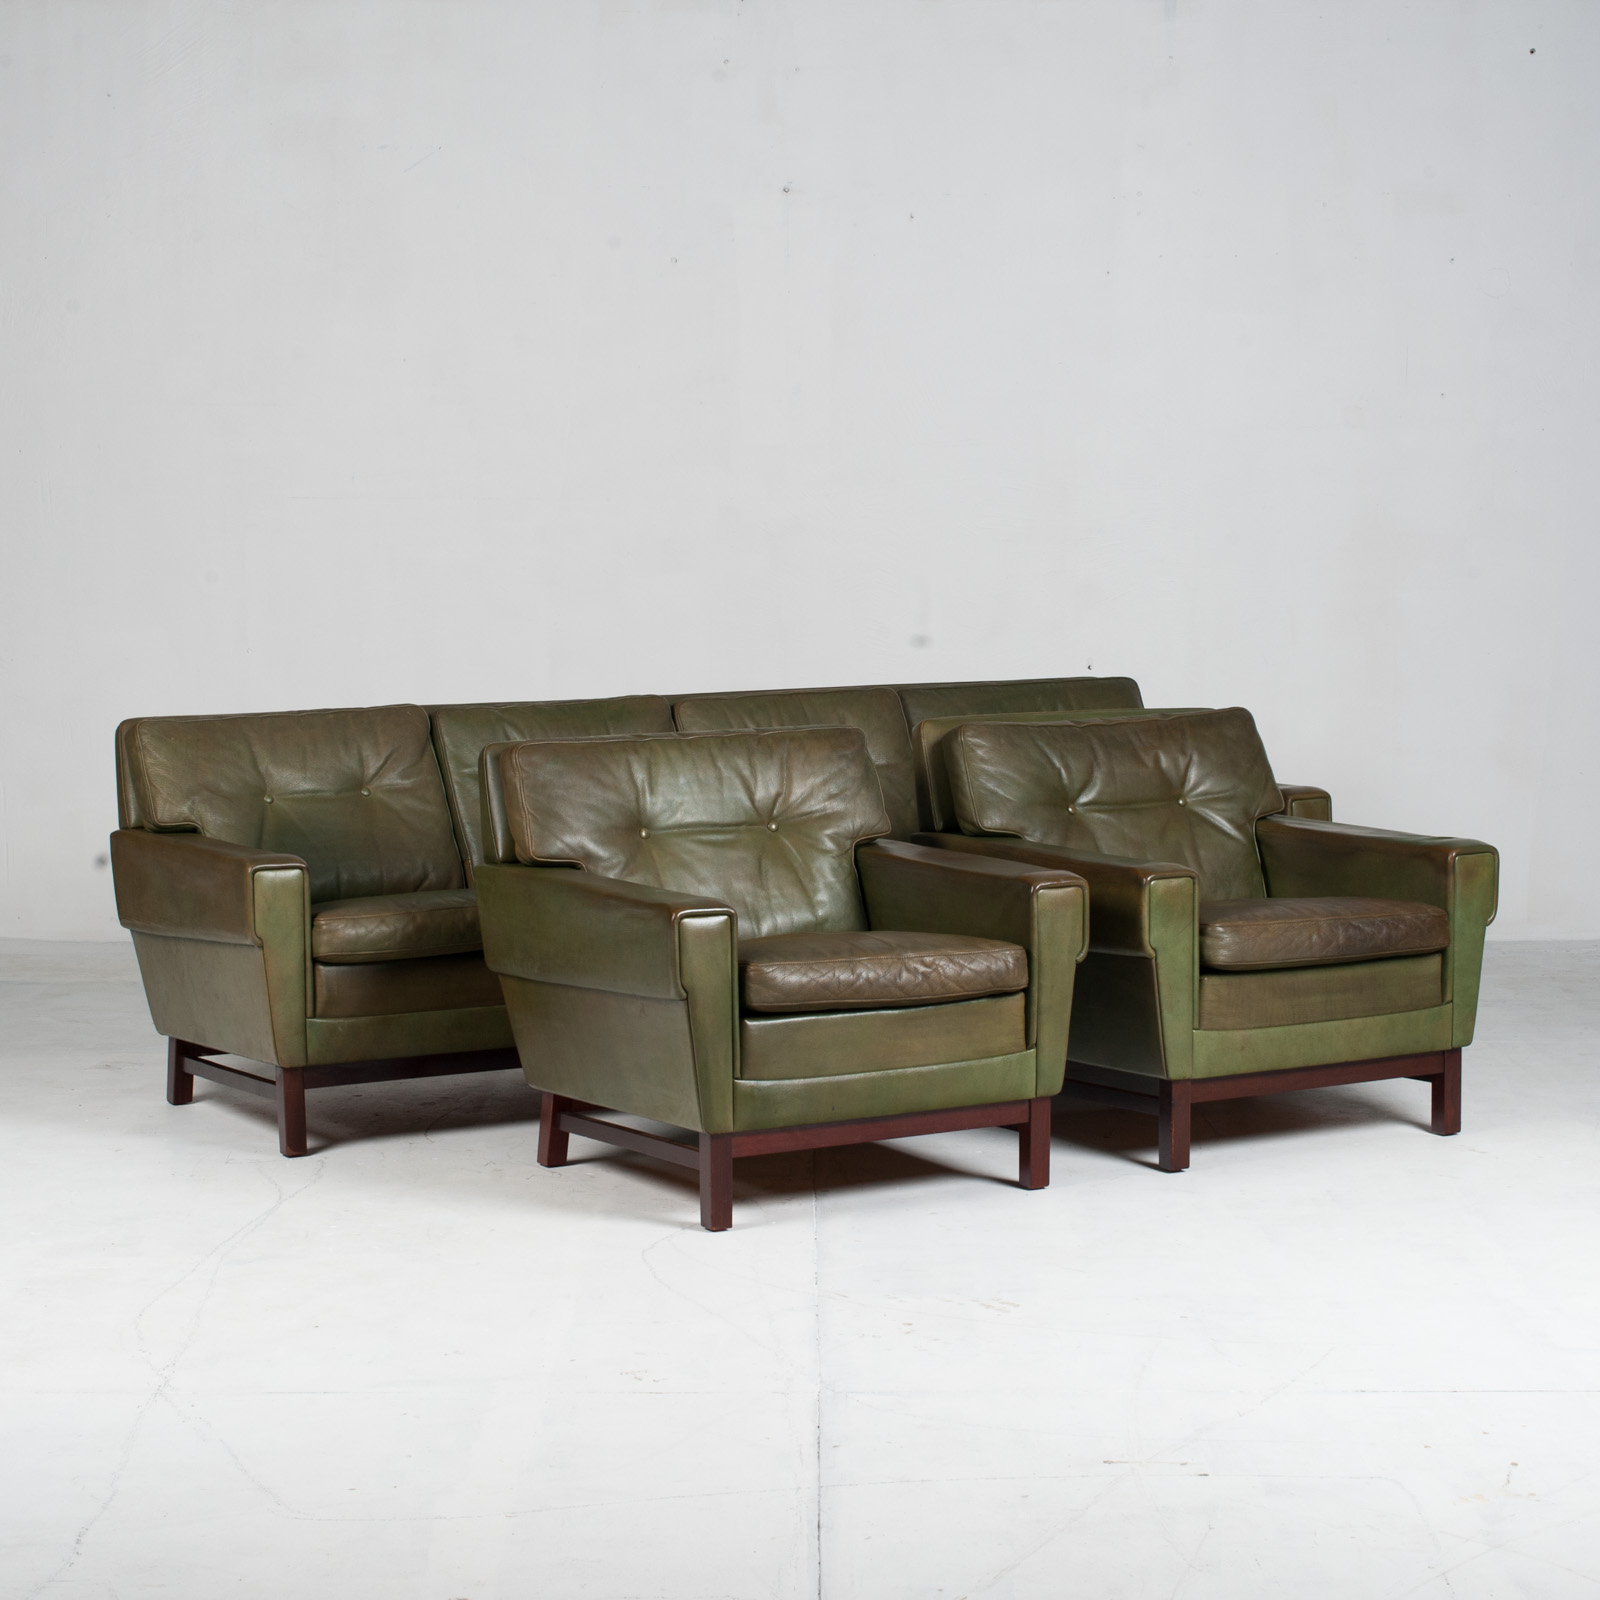 4 Seat Sofa In Olive Leather 1960s Denmark 017